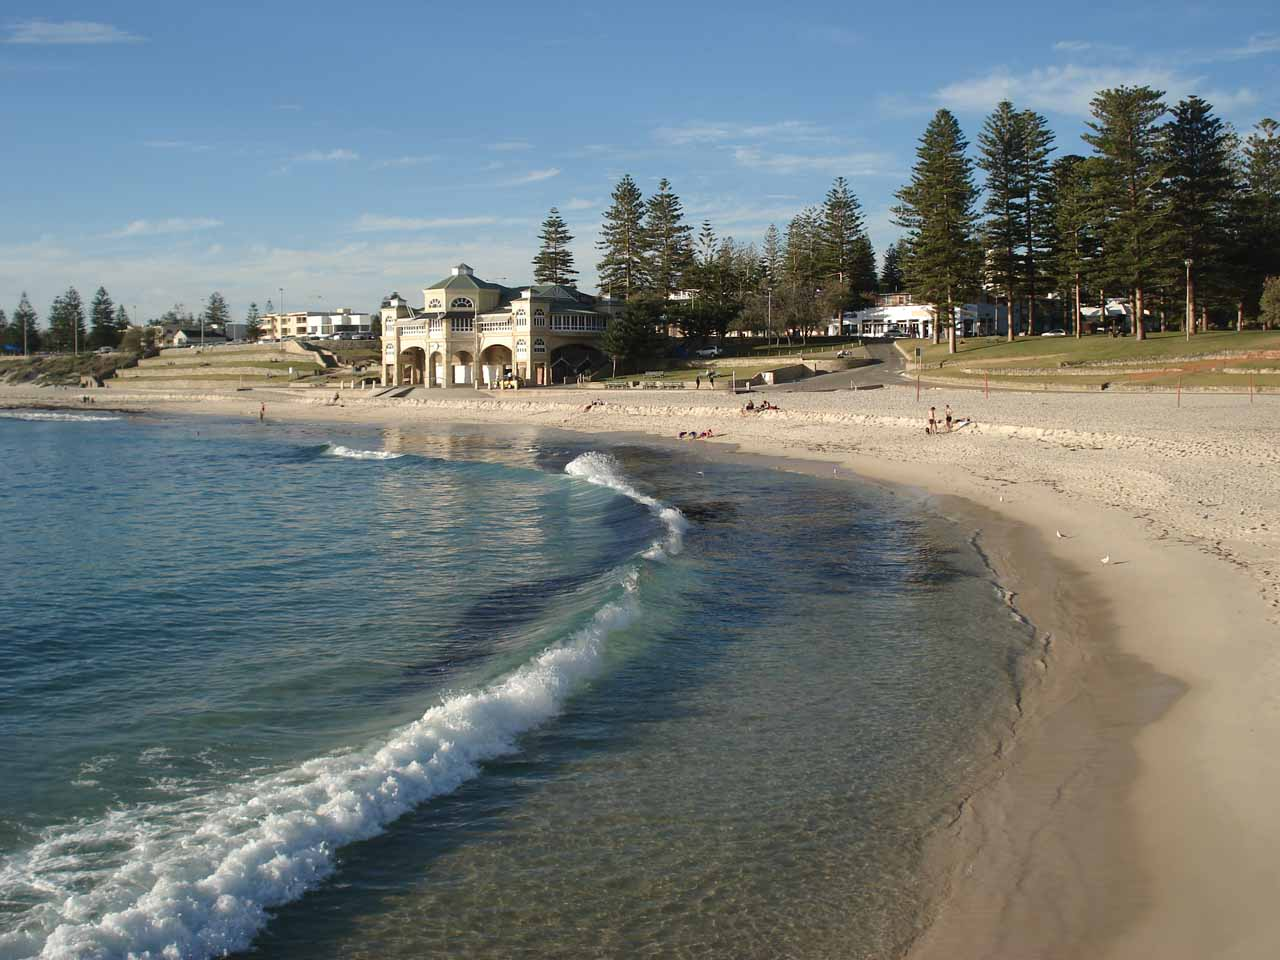 Also within the greater Perth area was Cottesloe Beach, which was a really nice and relaxing spot, especially since this was where we spent the afternoon of our last day of our WA trip back in 2006